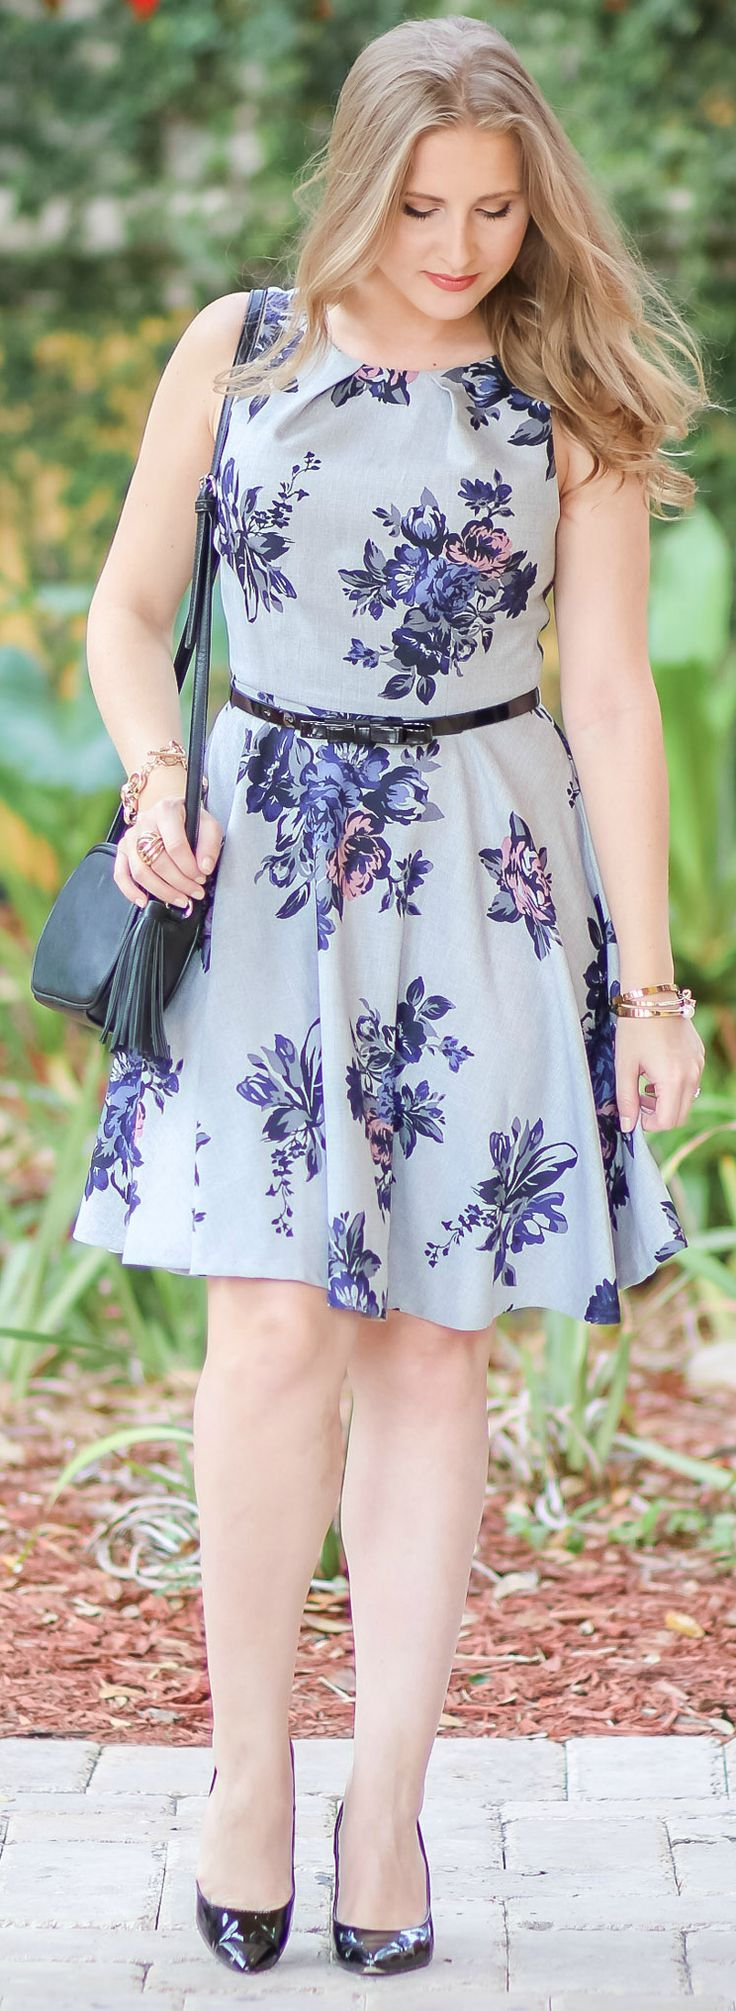 I'm loving this grey floral dress! The classy fitand